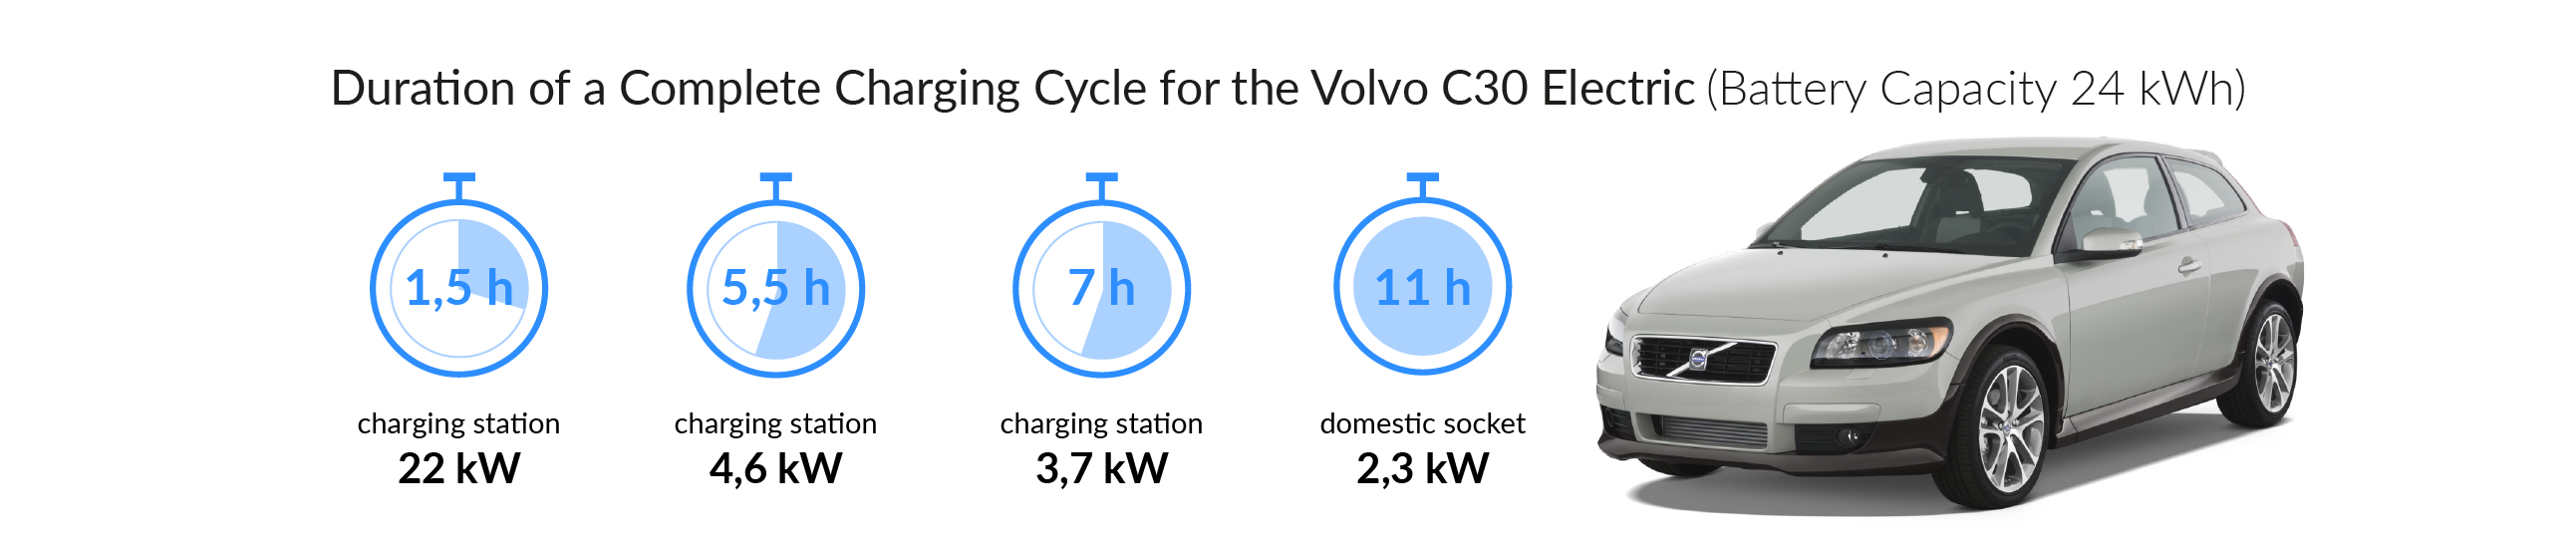 Charging time for your Volvo C30 Electric